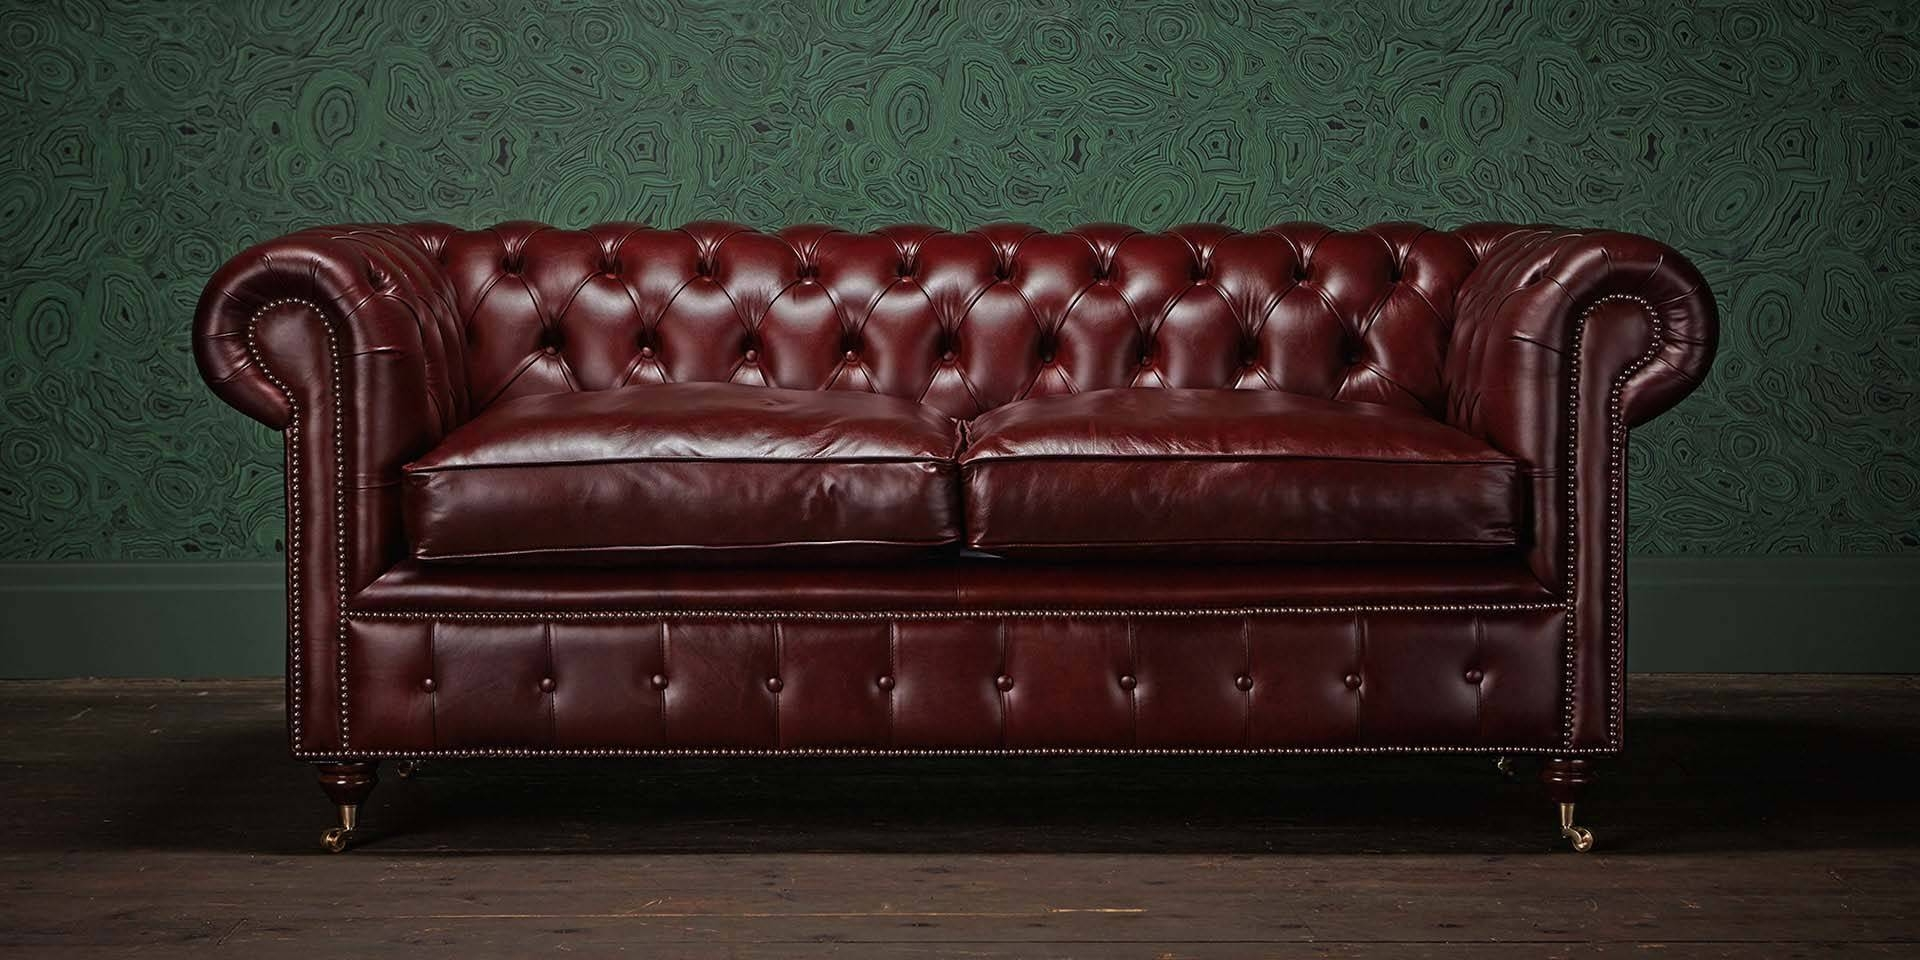 Chesterfields Of England | The Original Chesterfield Company pertaining to Chesterfield Sofas and Chairs (Image 8 of 15)